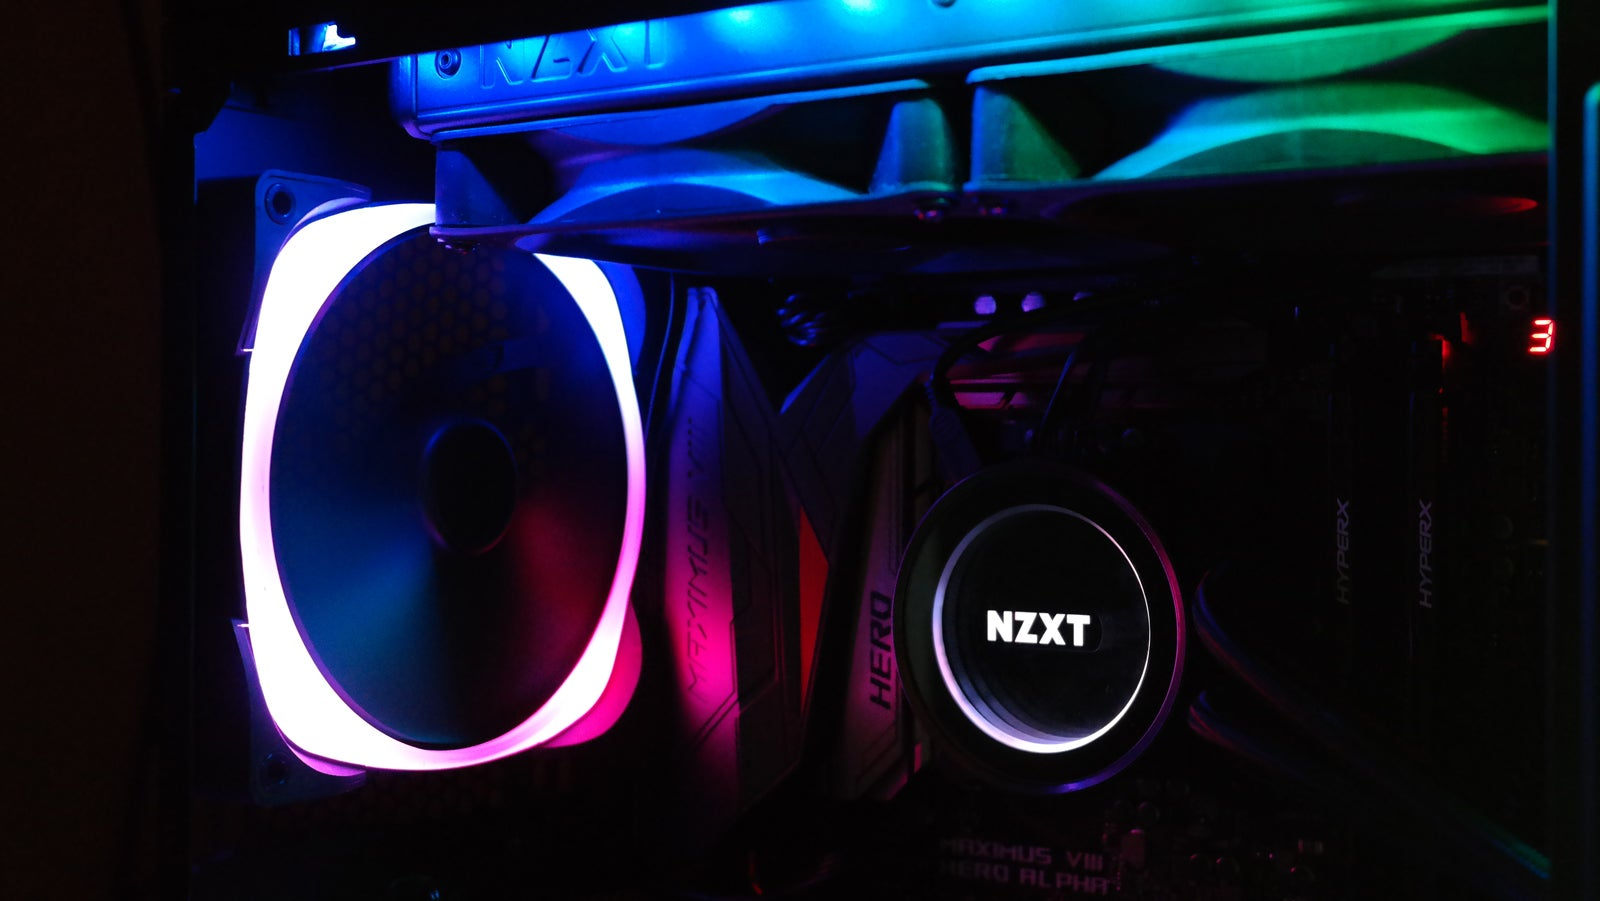 Lighting Rgb Pimp Your Pc With An Rgb Lighting Kit Pcworld